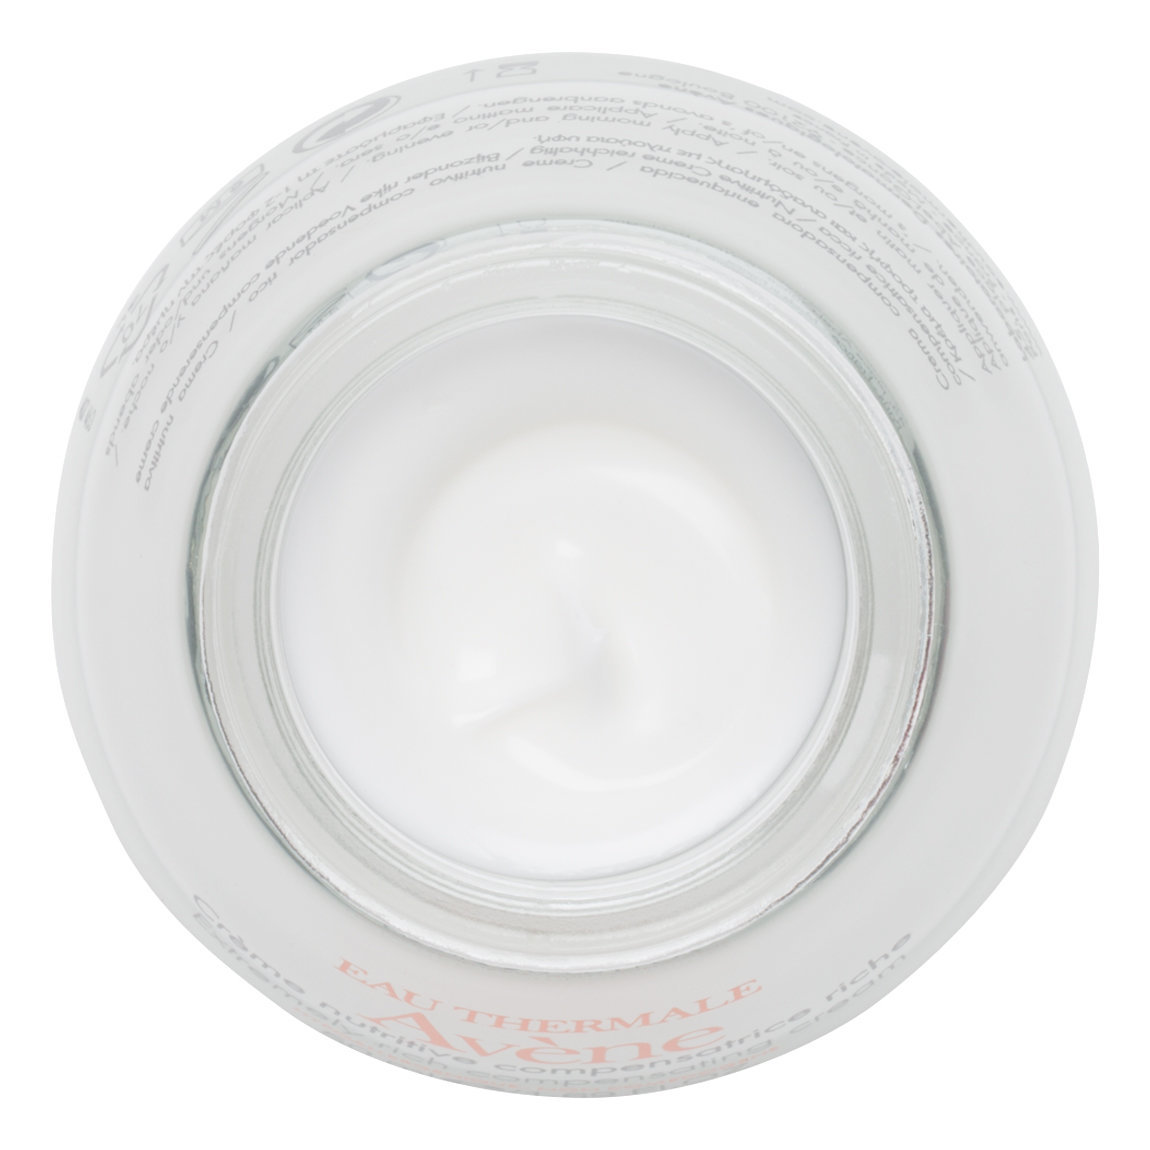 Eau Thermale Avène Extremely Rich Compensating Cream